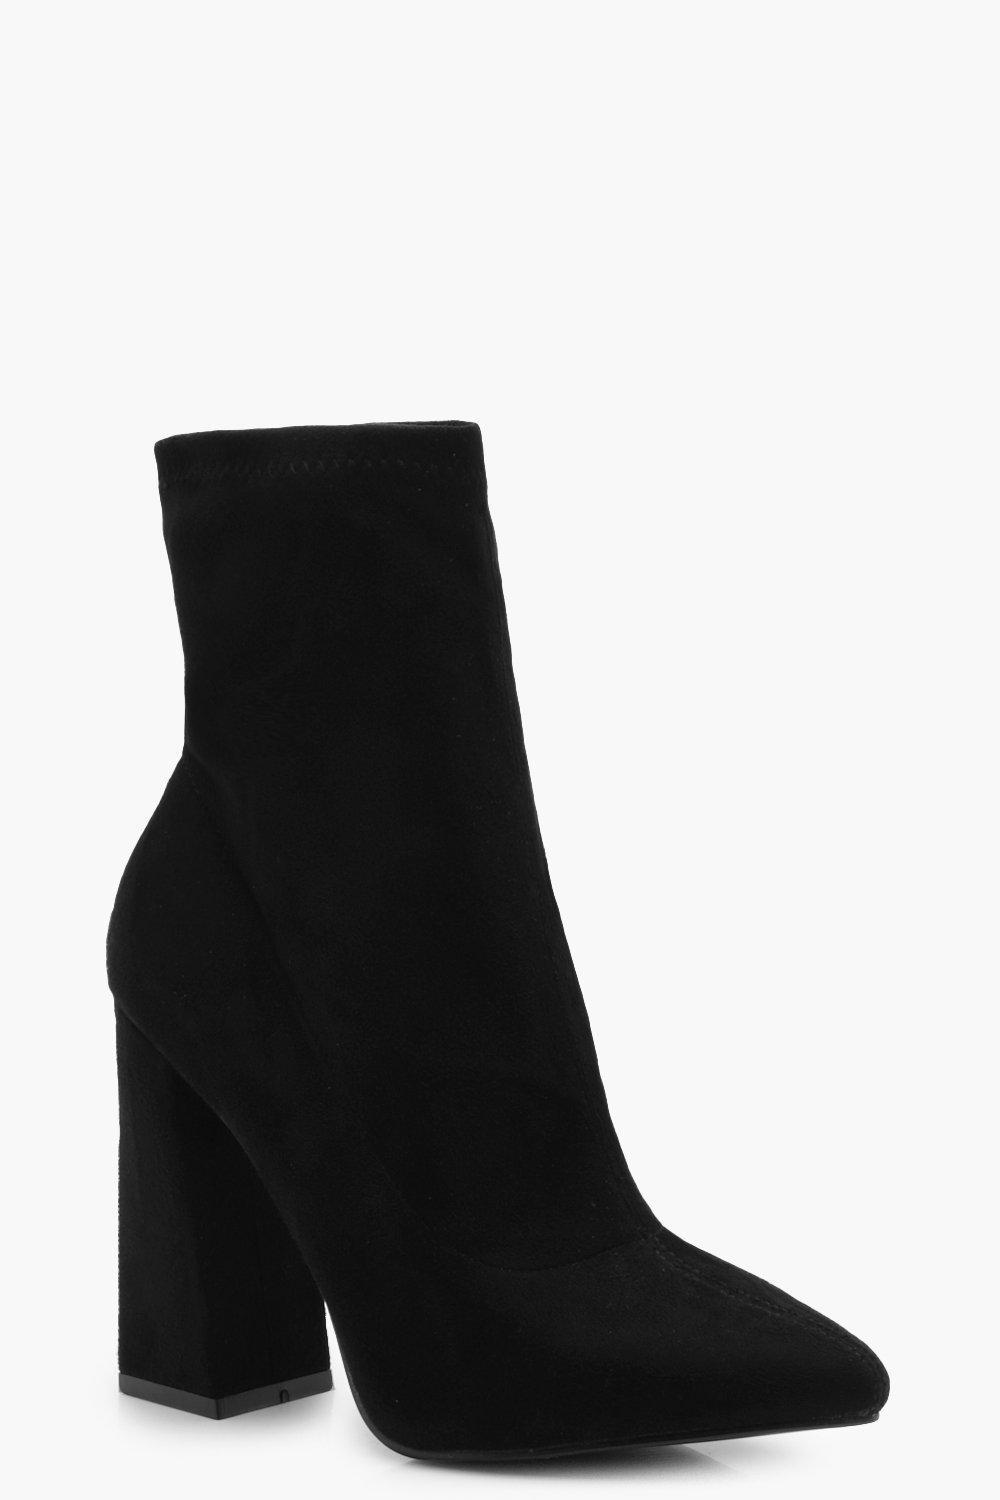 sale new arrival the best store to get Black suedette 'Bock' high block heel sock boots Q6iJZ